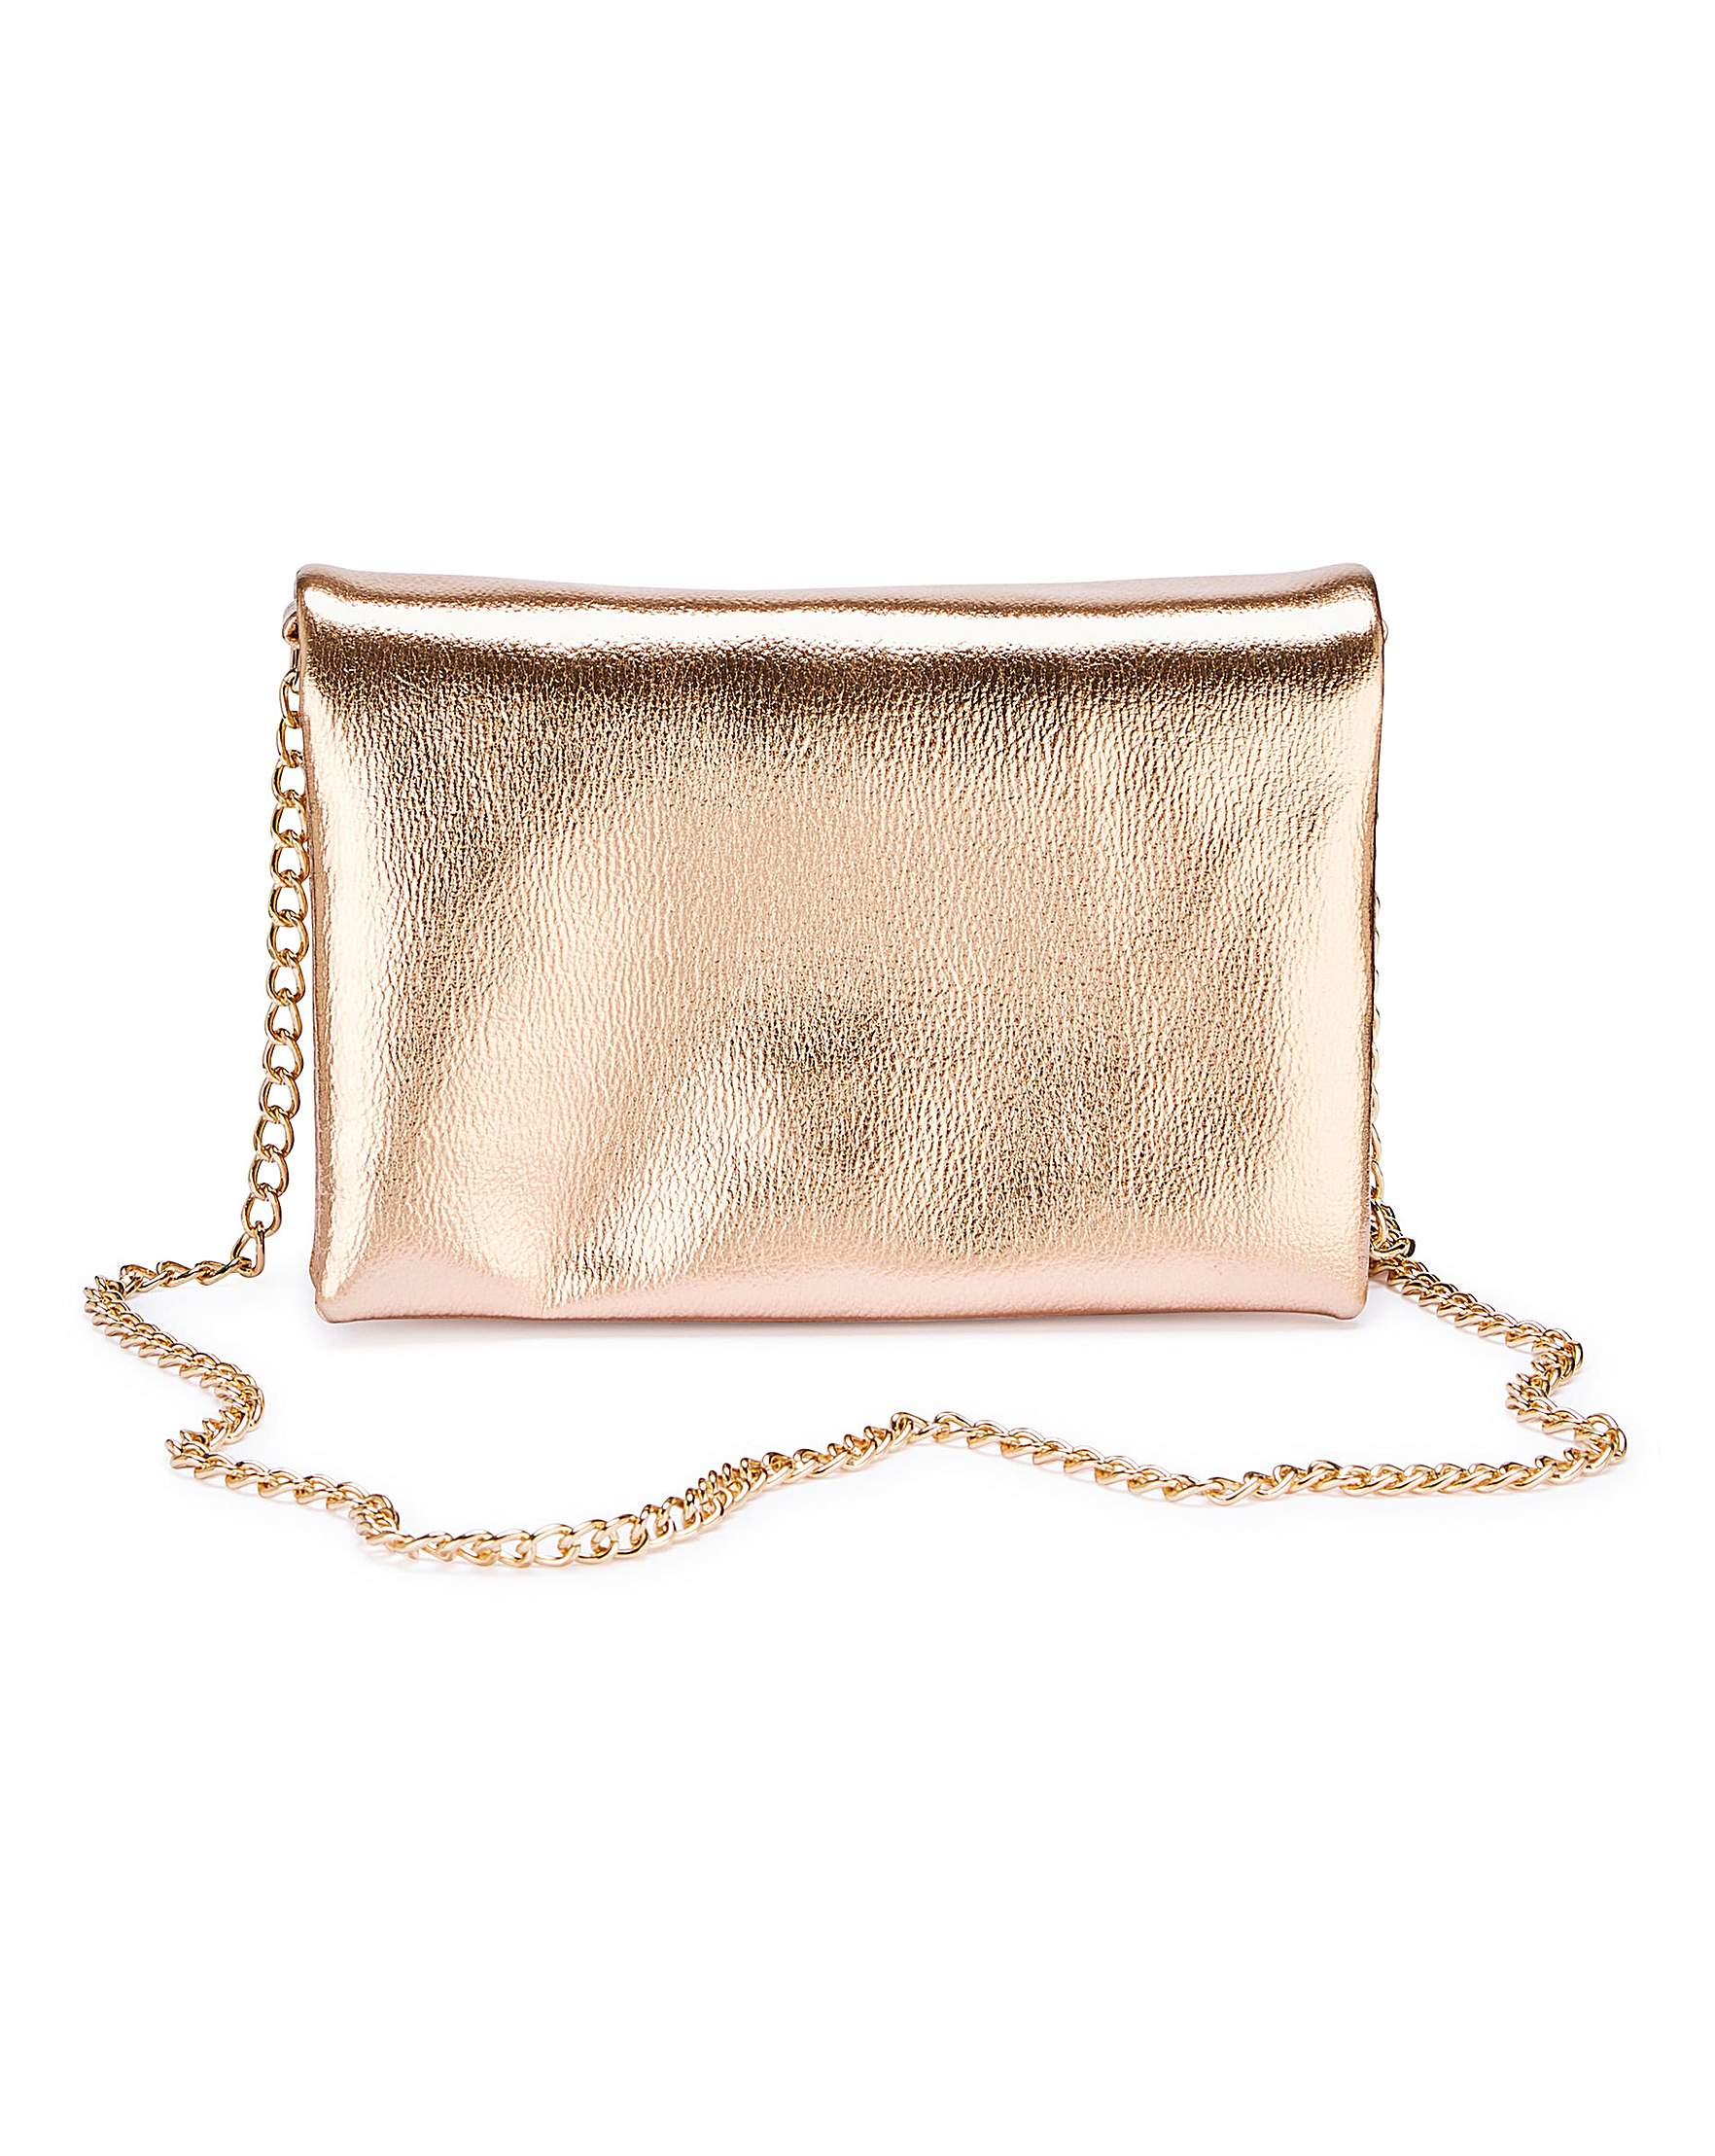 51803e9577e8 Source · Rose Gold Multi Compartment Clutch Bag Simply Be